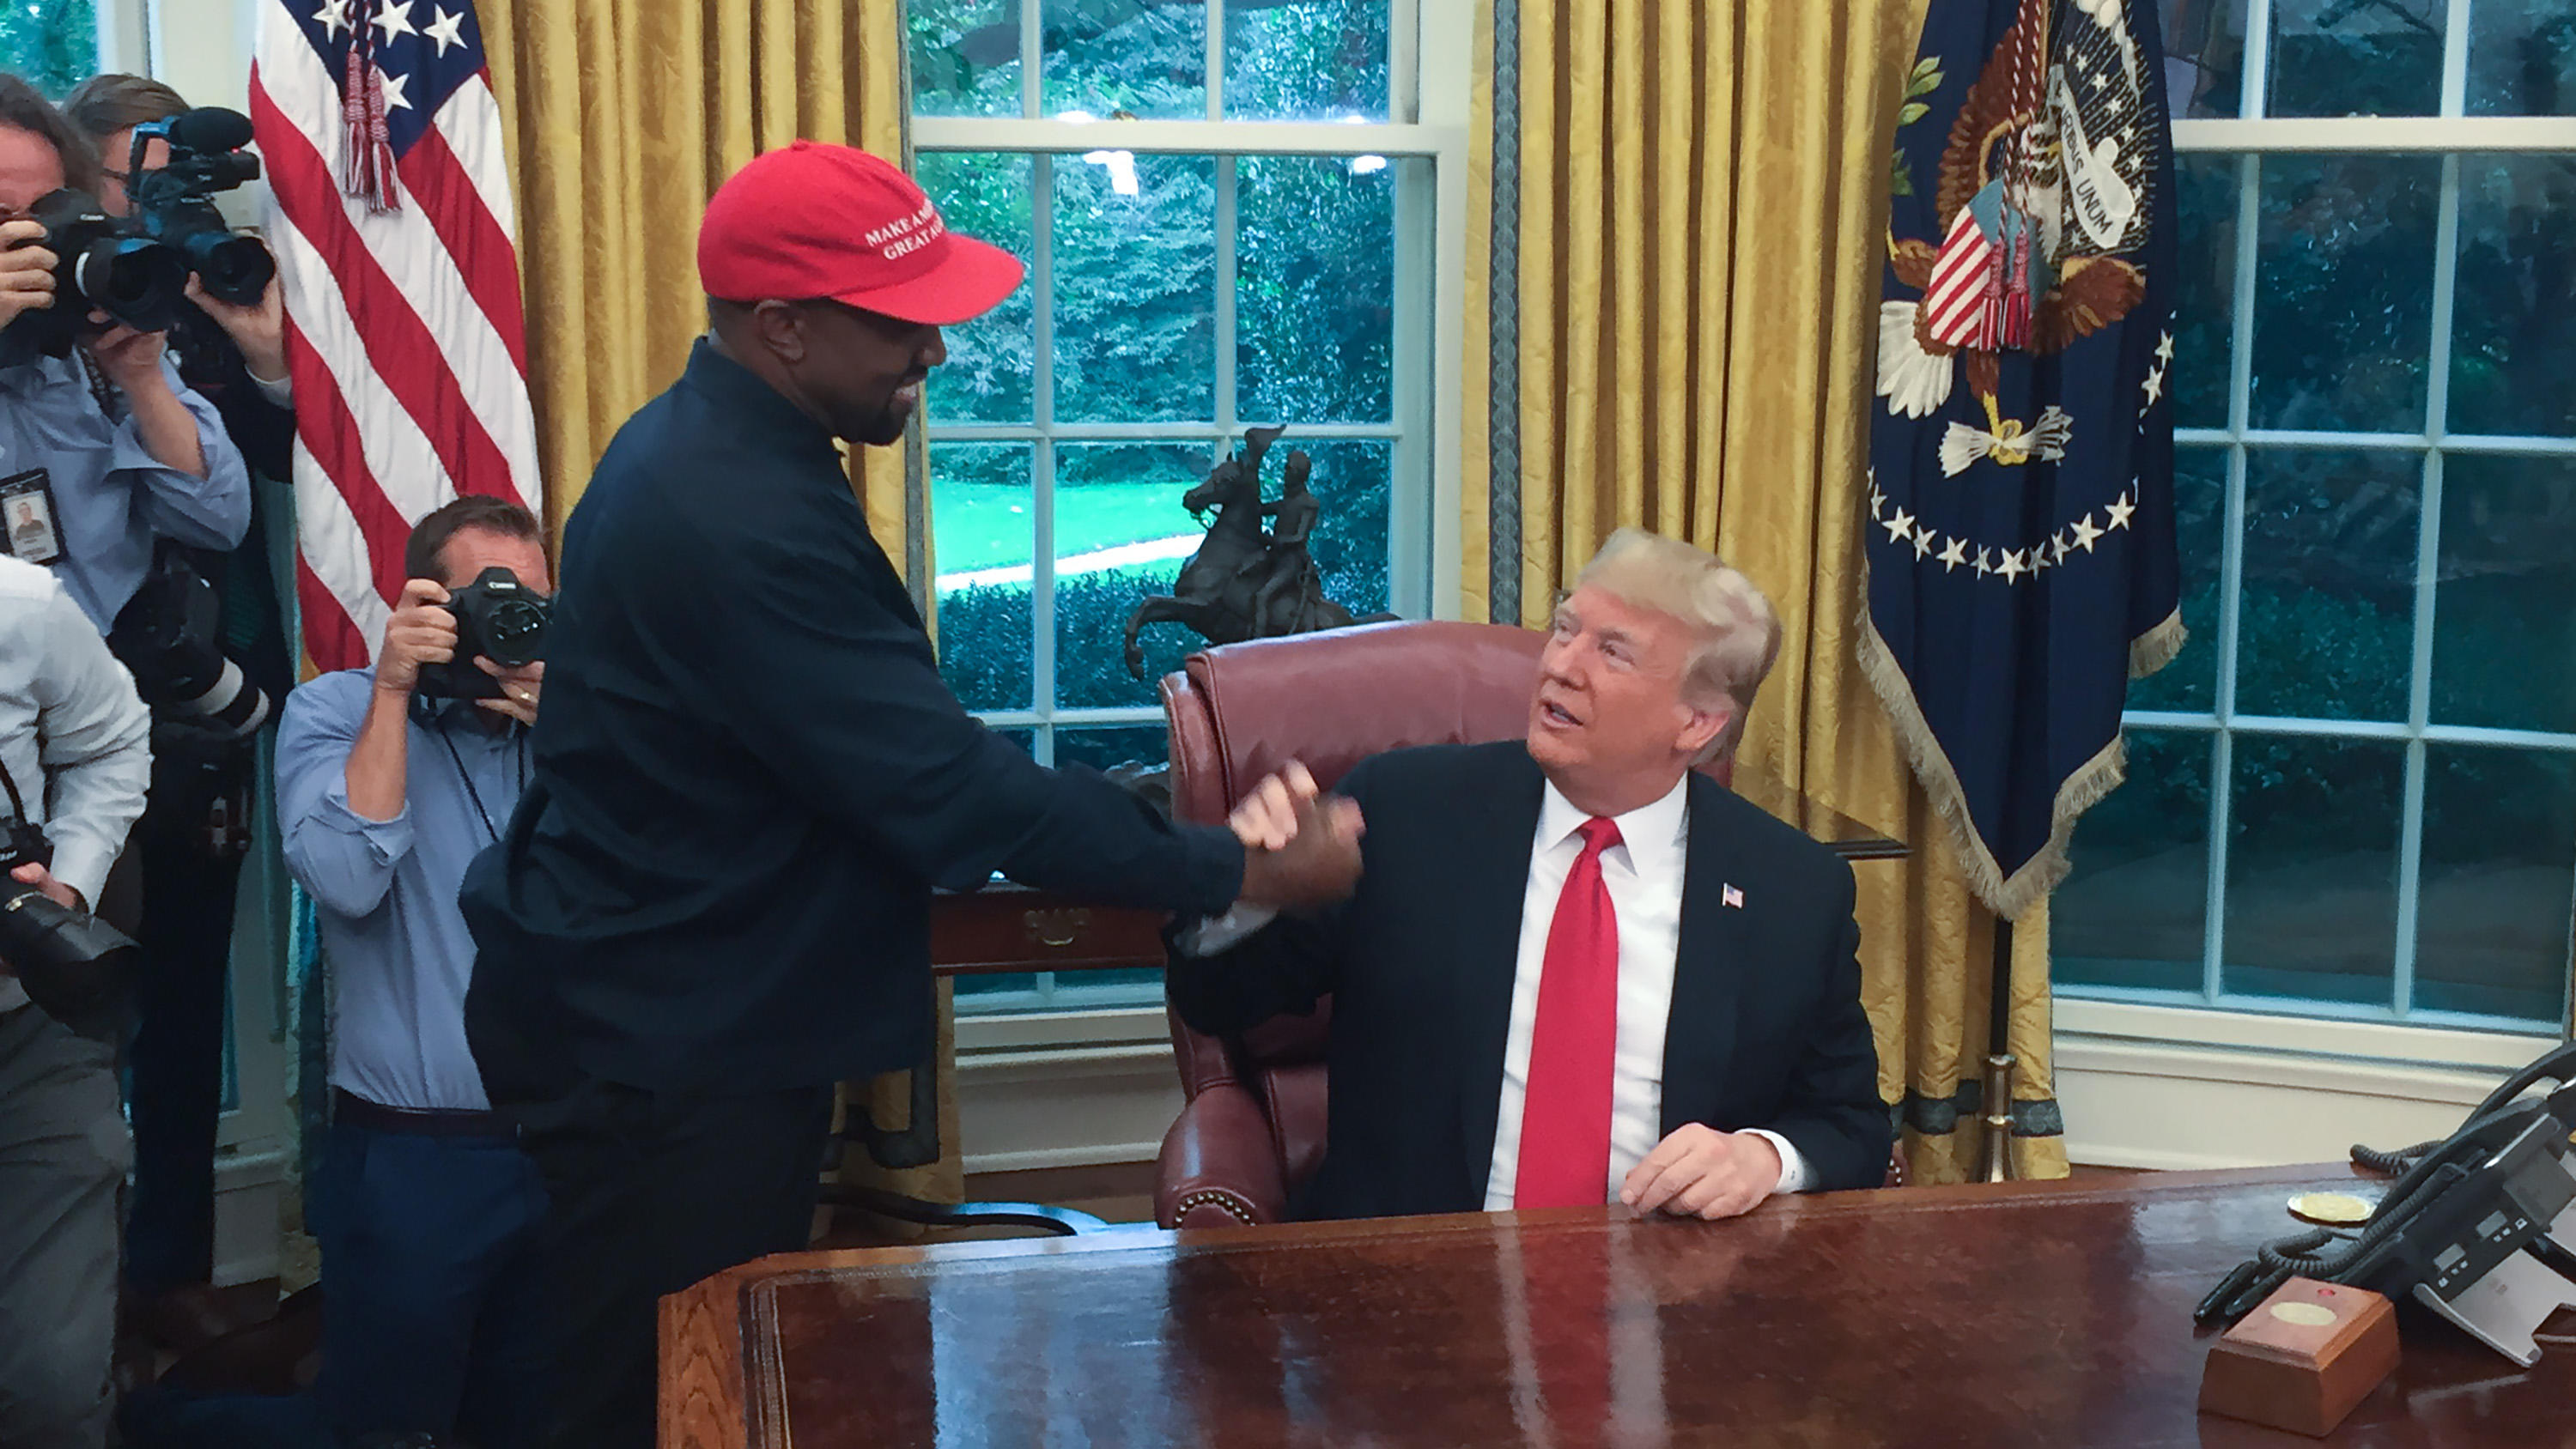 (Files) in this file photo US President Donald Trump meets with rapper Kanye West in the Oval Office of the White House in Washington, DC, October 11, 2018. - Rapper Kanye West, who has been outspoken in his support for President Donald Trump, now sa